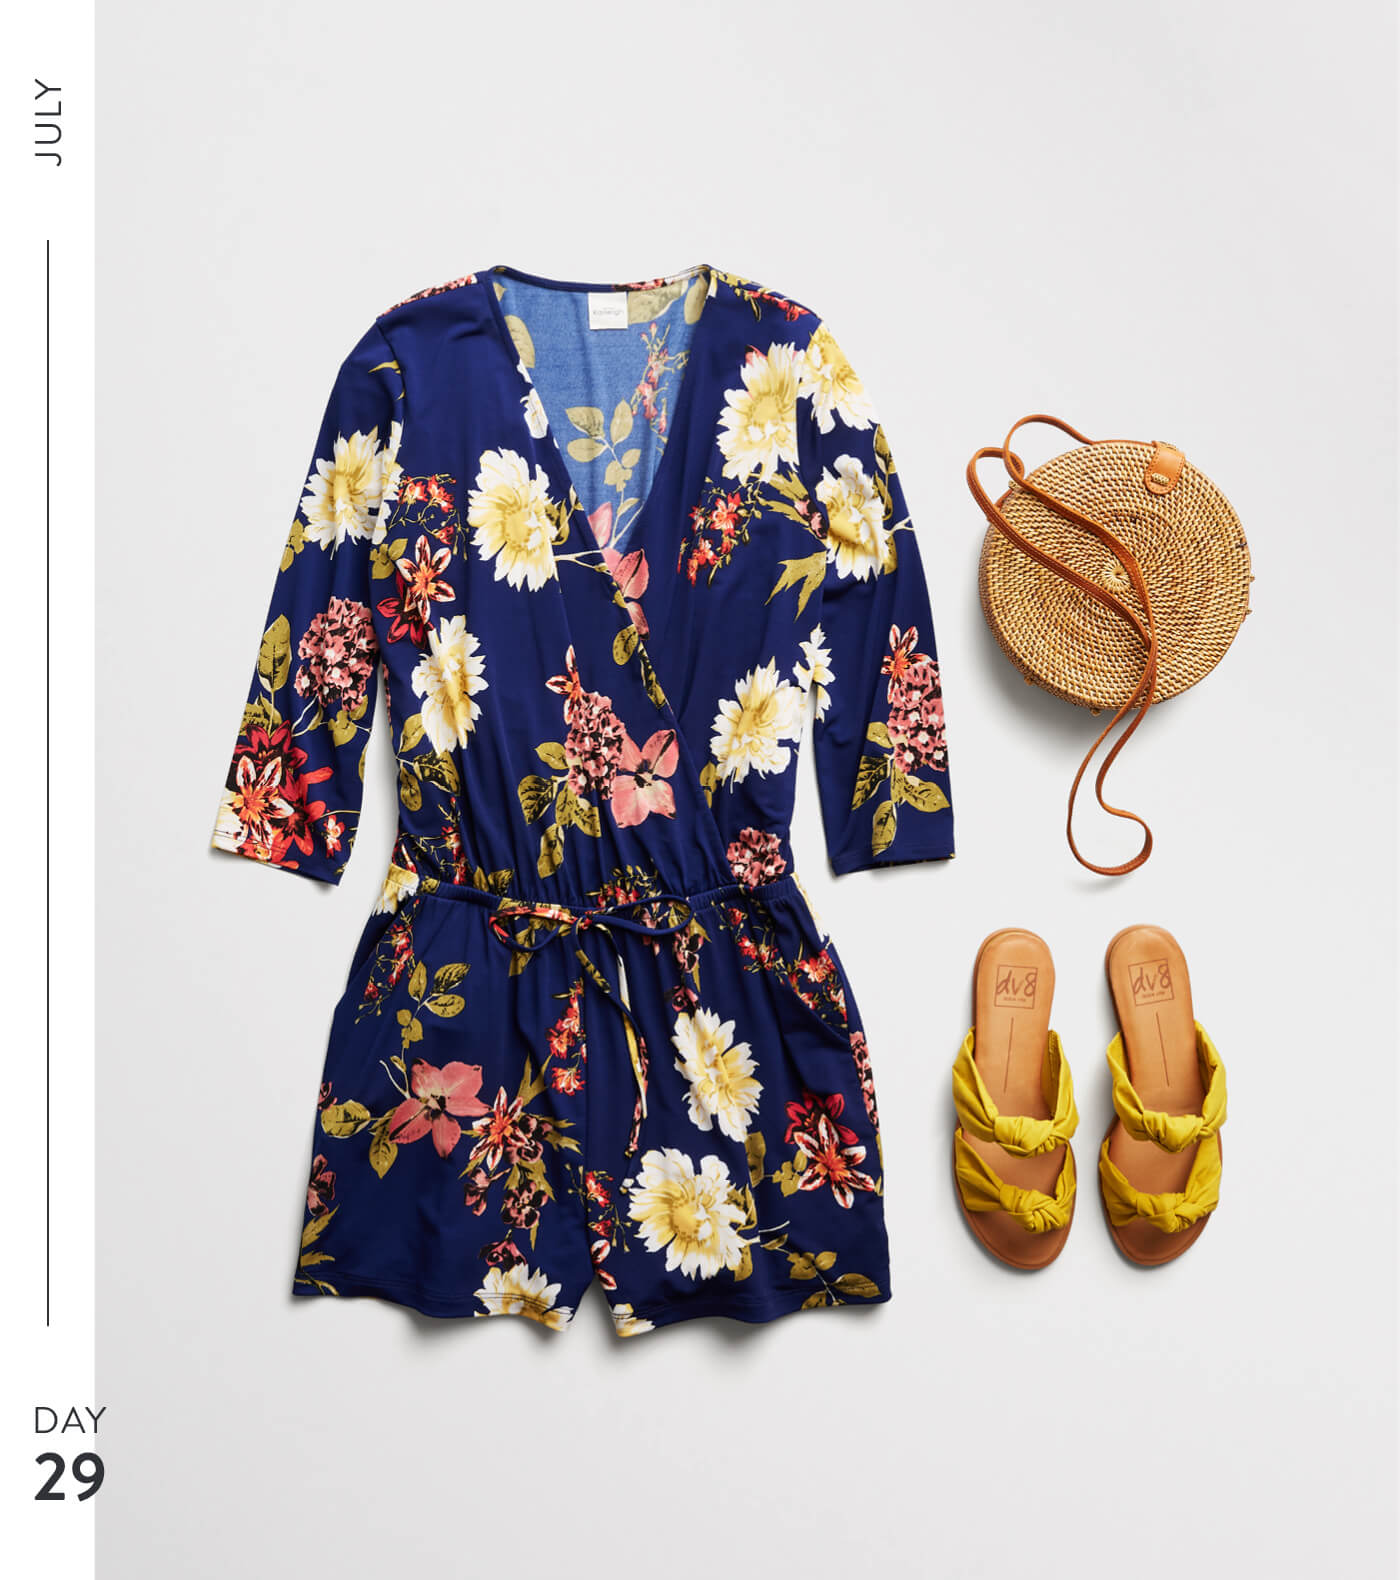 T3_W19_BLG_July-Month-of-Outfits-_357260432_29